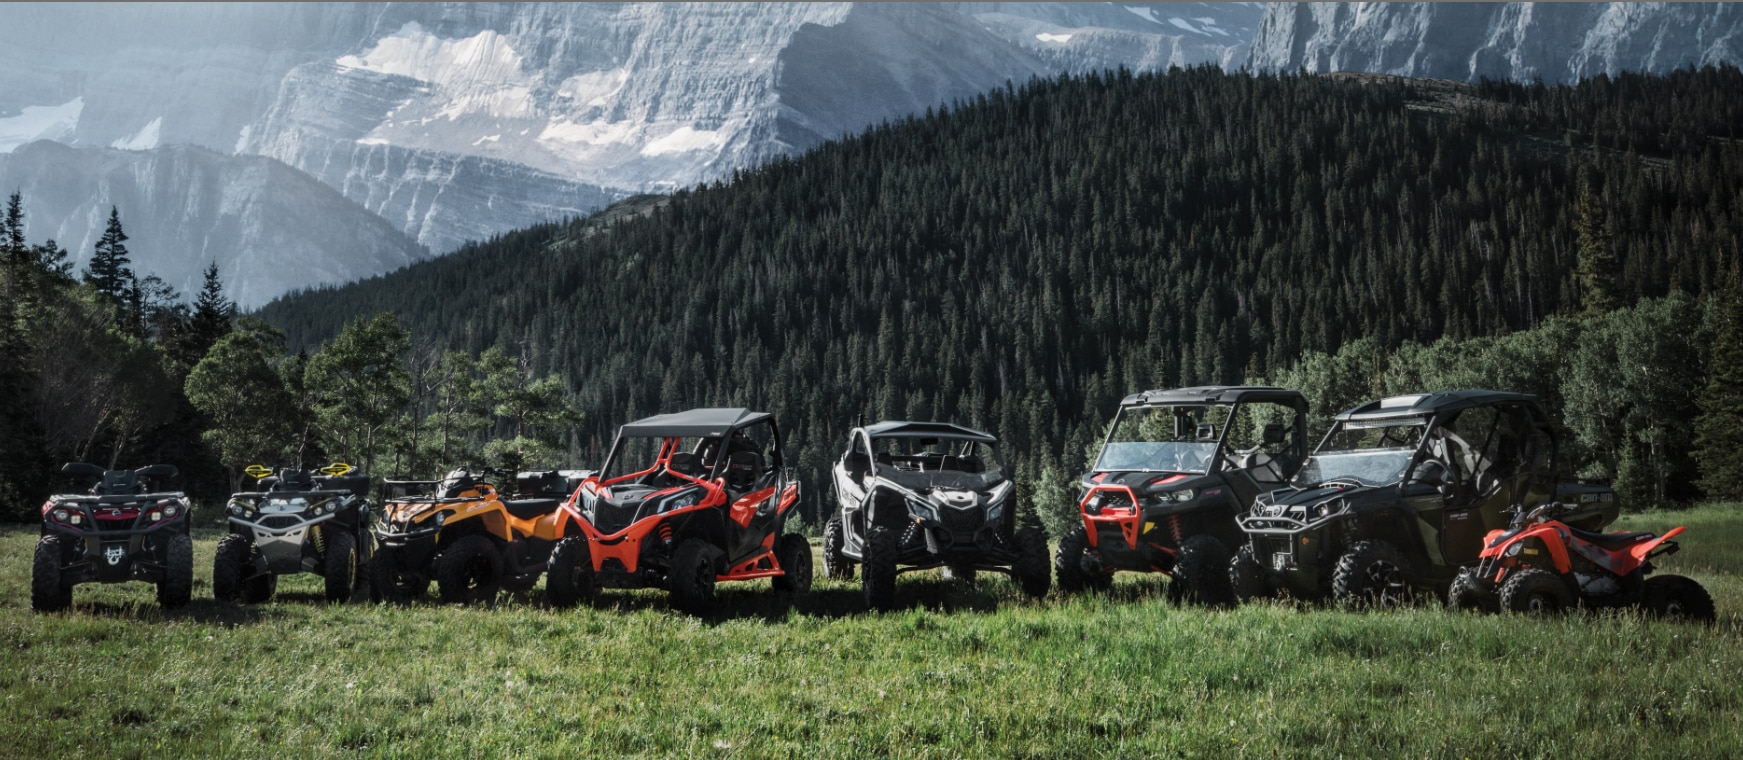 Can-Am Off-Road side-by-side and ATV lineup with a scenic background